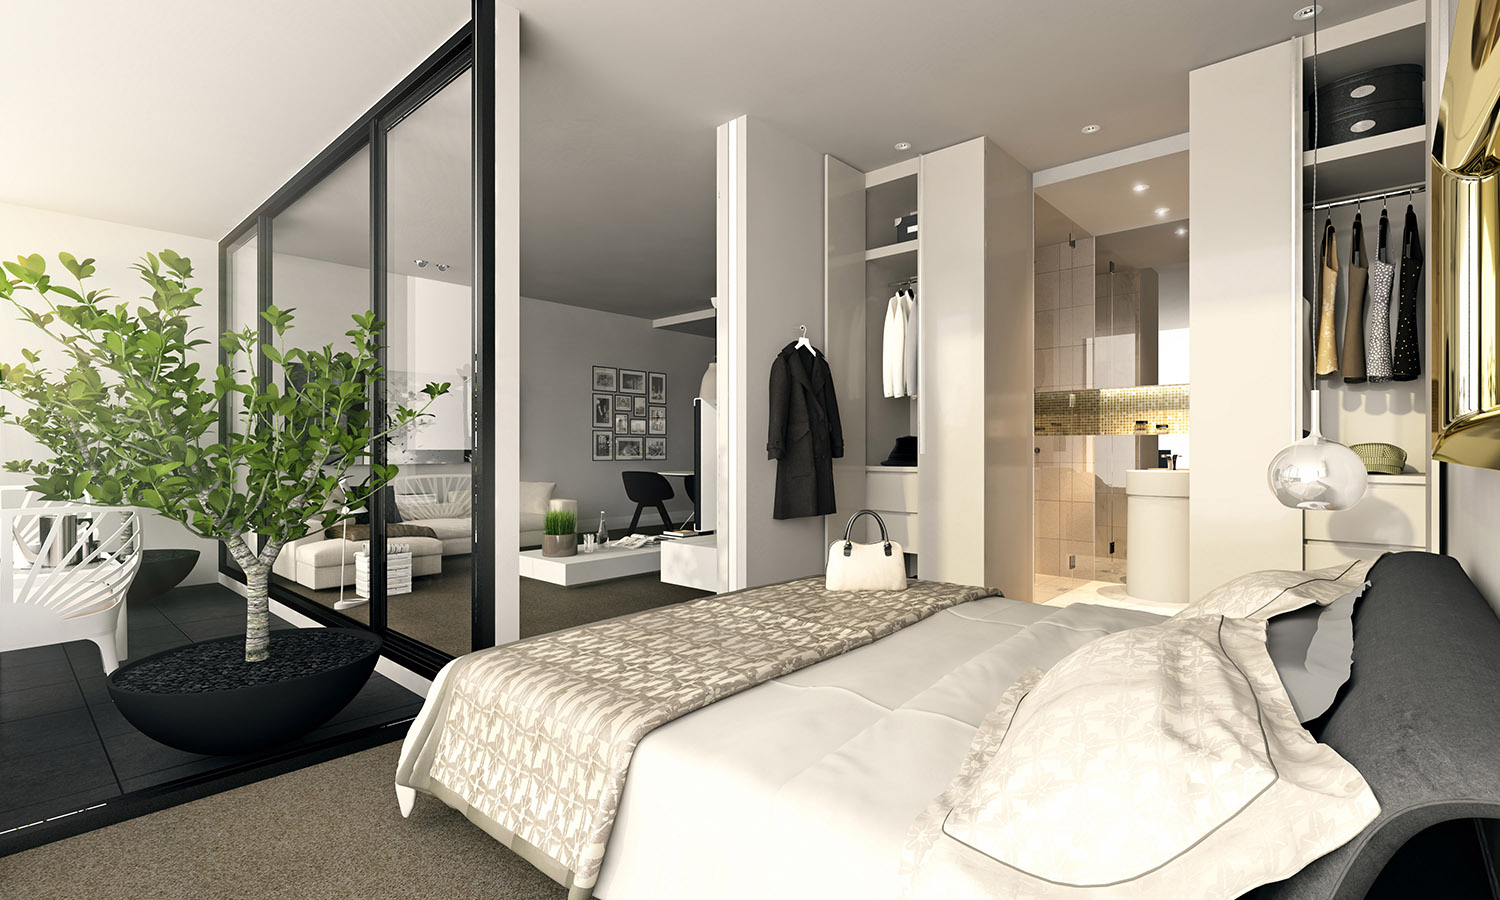 Studio apartment interiors inspiration Modern apartment interior design